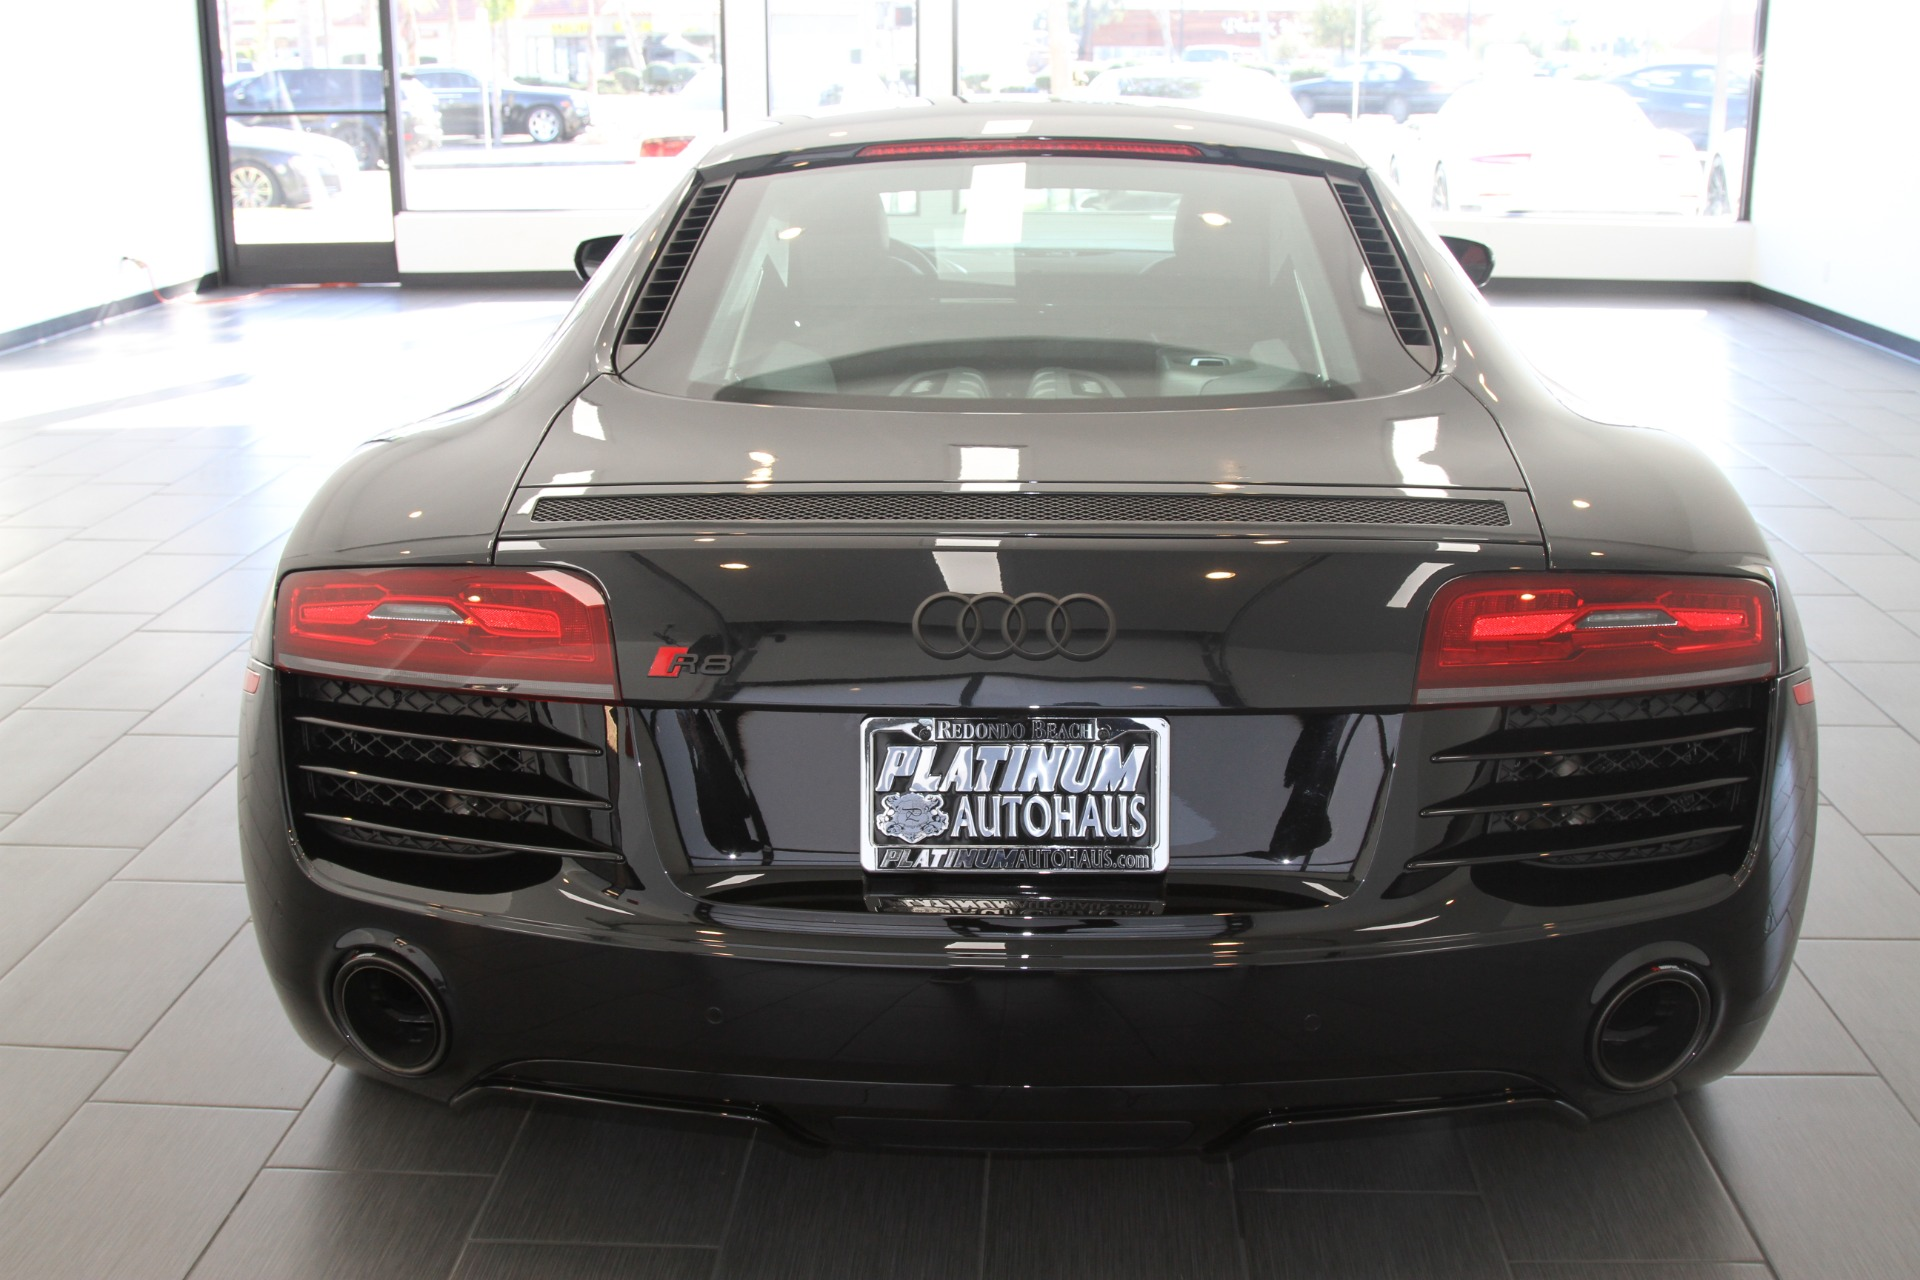 Free Vehicle History Report By Vin >> 2014 Audi R8 5.2 V10 quattro ***RARE 6 SPEED MANUAL ...